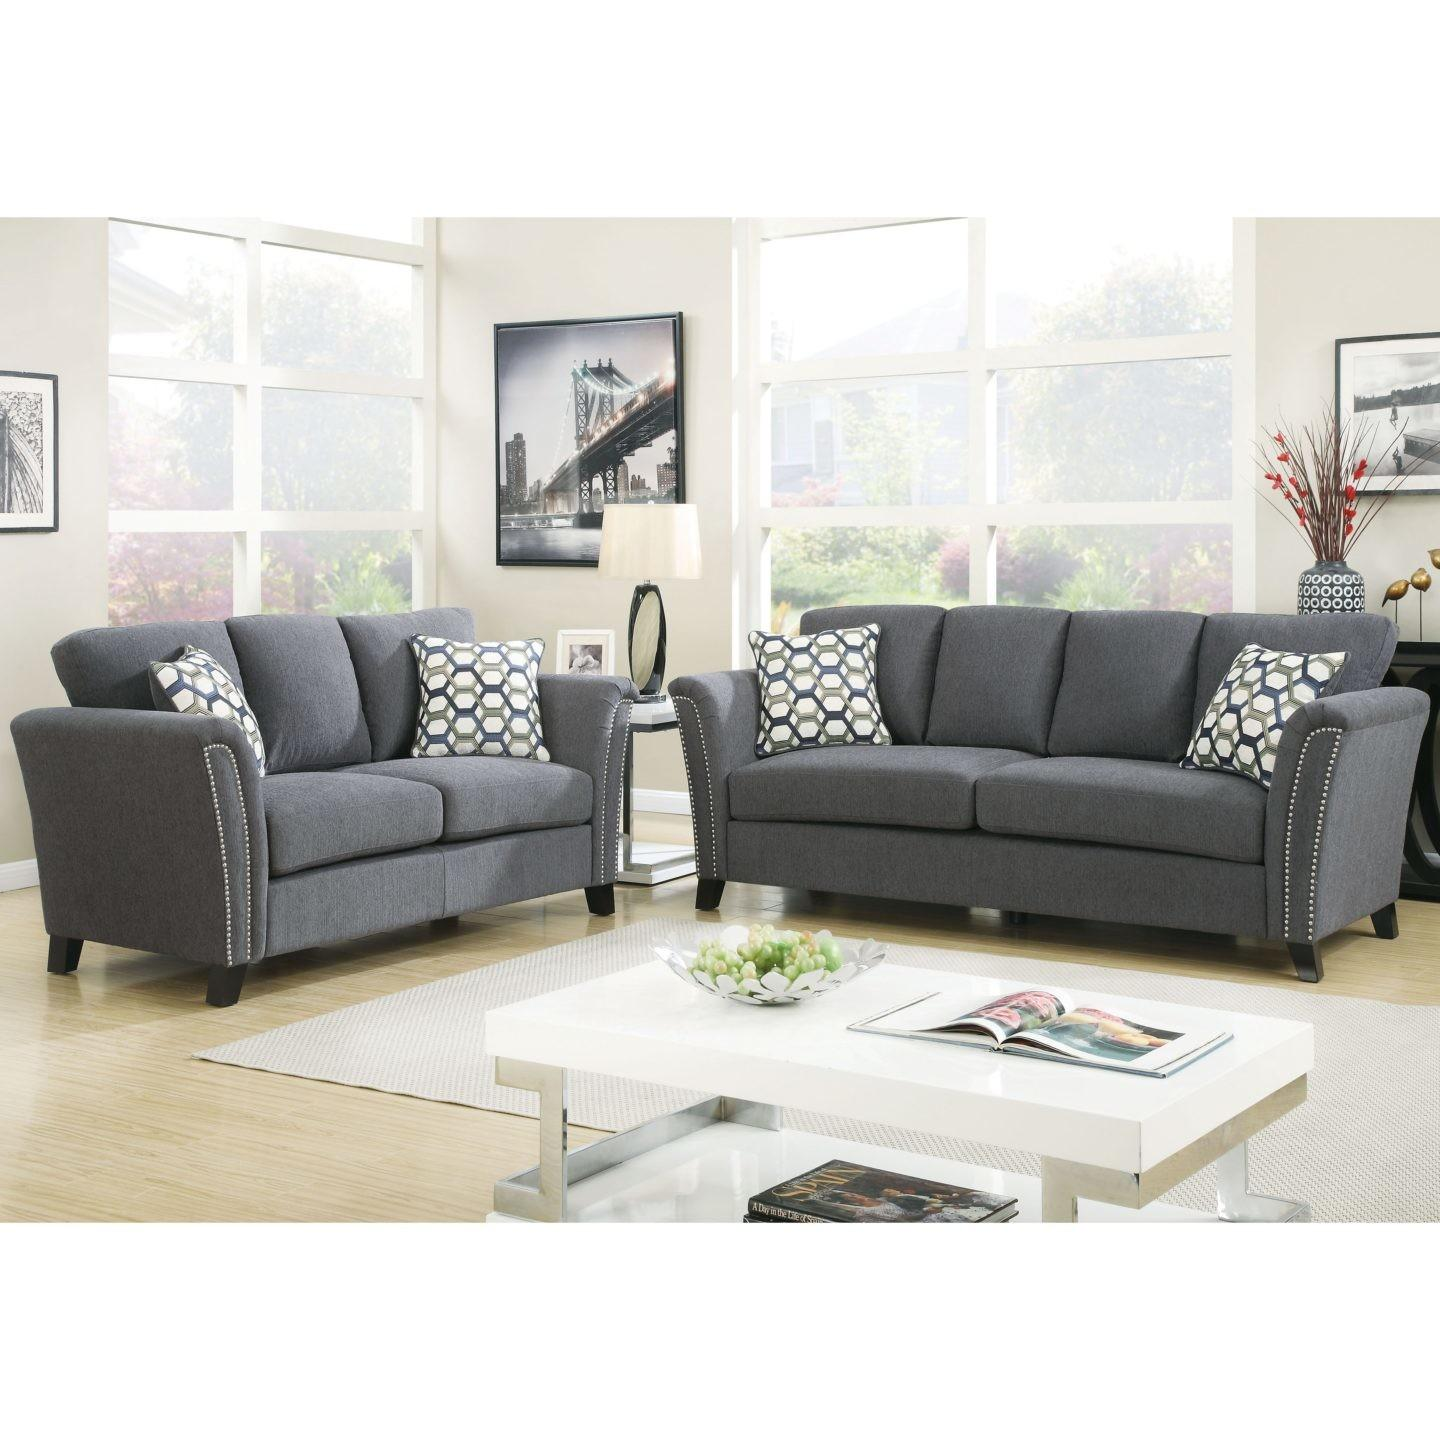 Top Sofa Styles Your Home Overstock